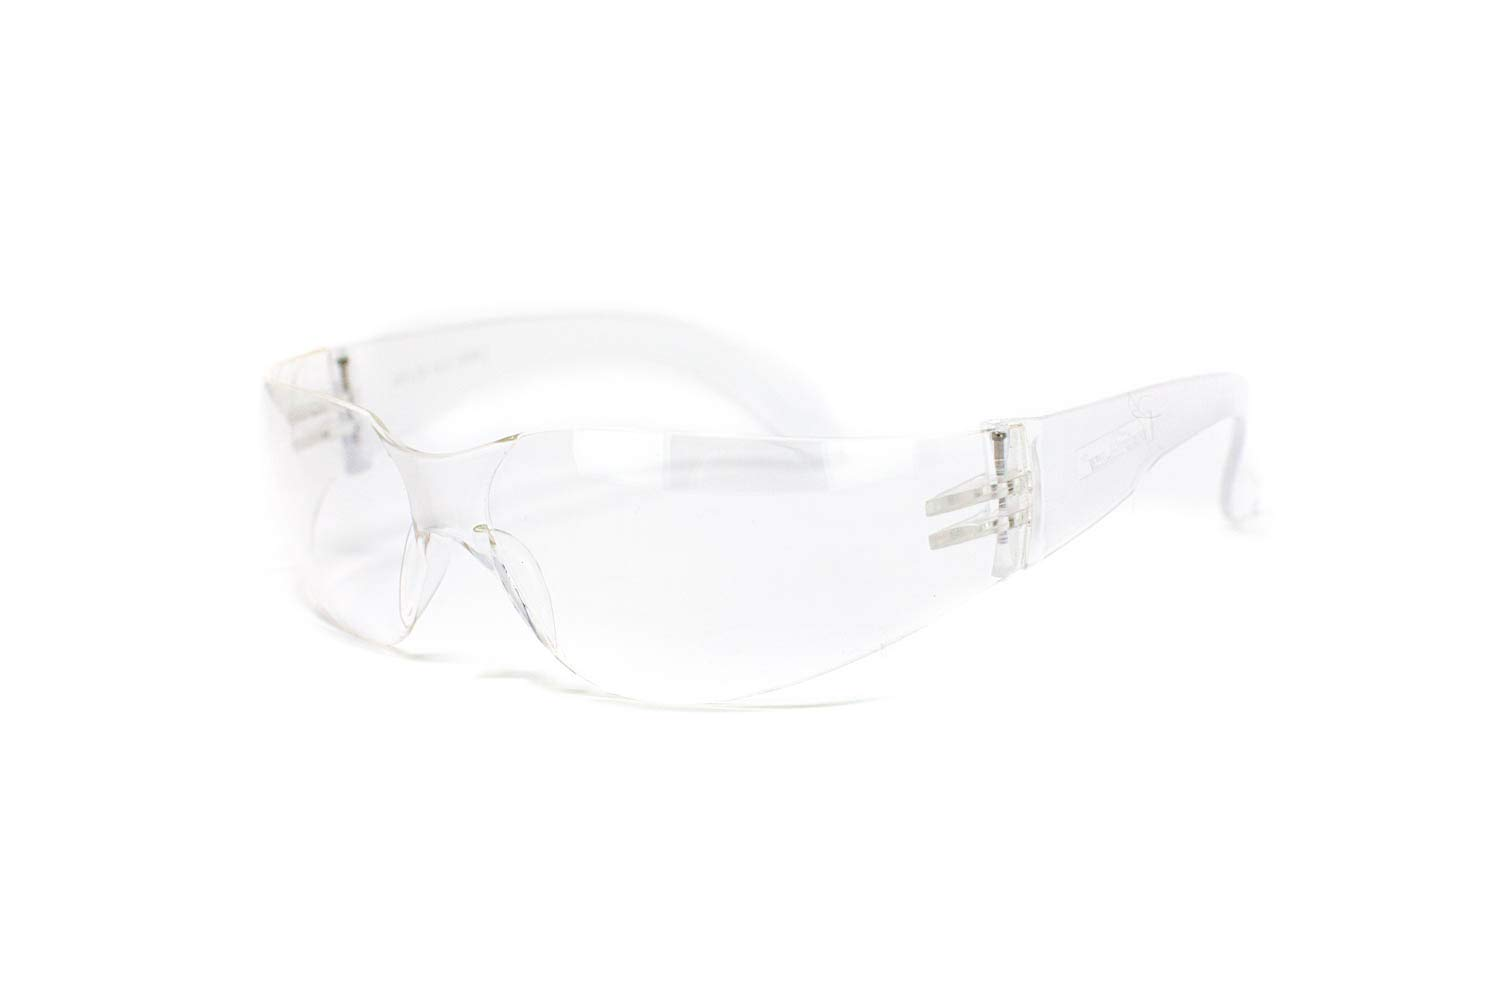 BISON LIFE Safety Glasses | One Size, Clear Protective Polycarbonate Lens, Clear Temple, 12 per Box (Case of 12 boxes, 144 pairs total) by BISON LIFE (Image #3)